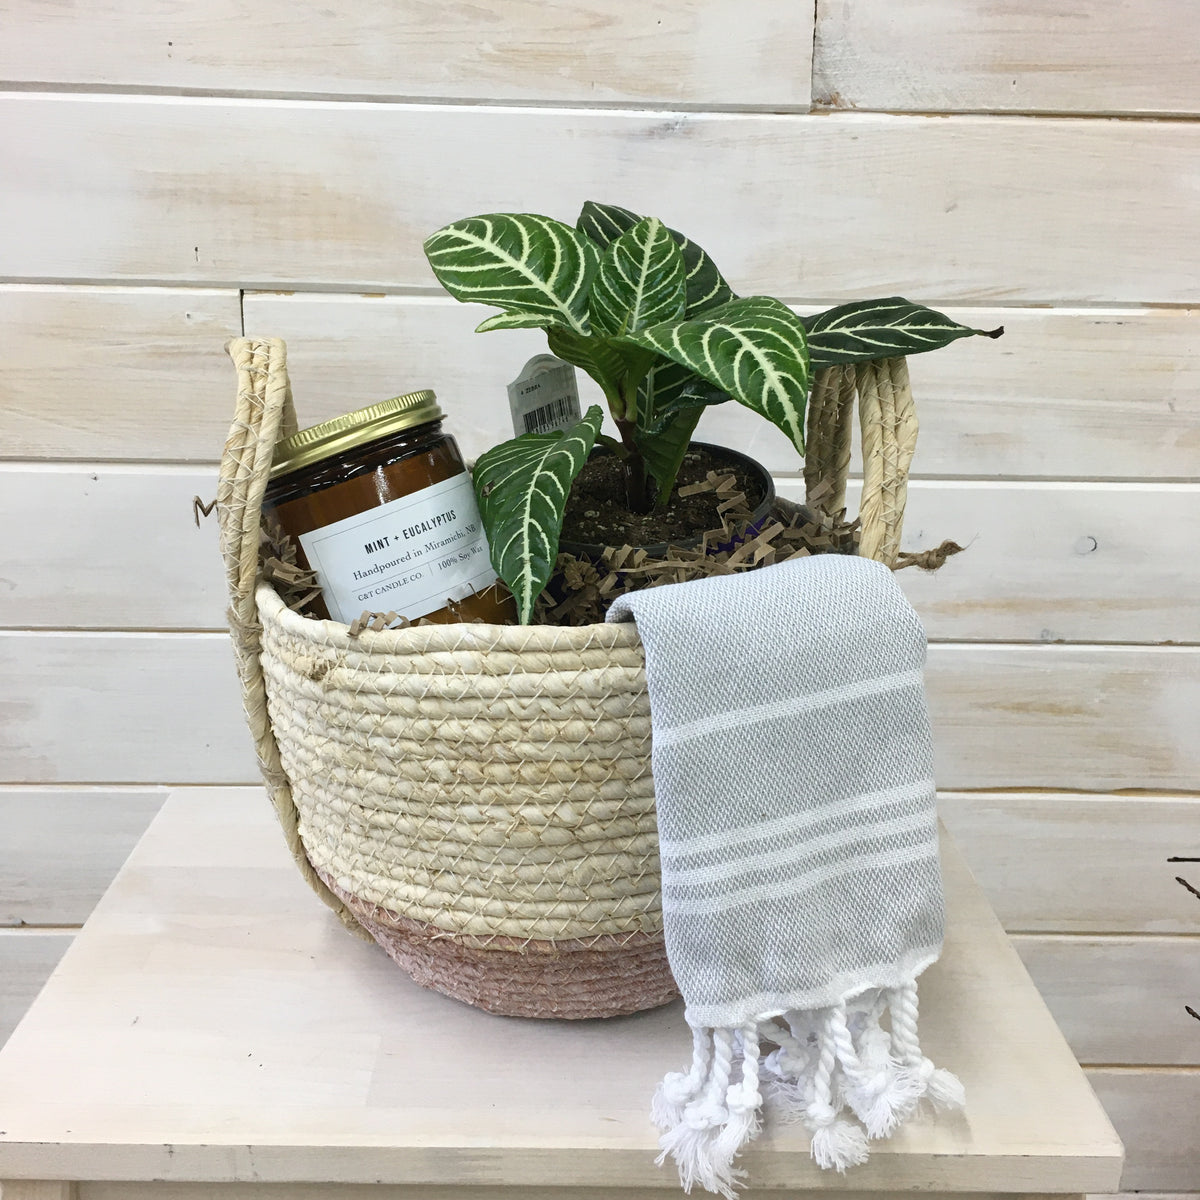 Mothers Day Basket Zebra Plant & Candle